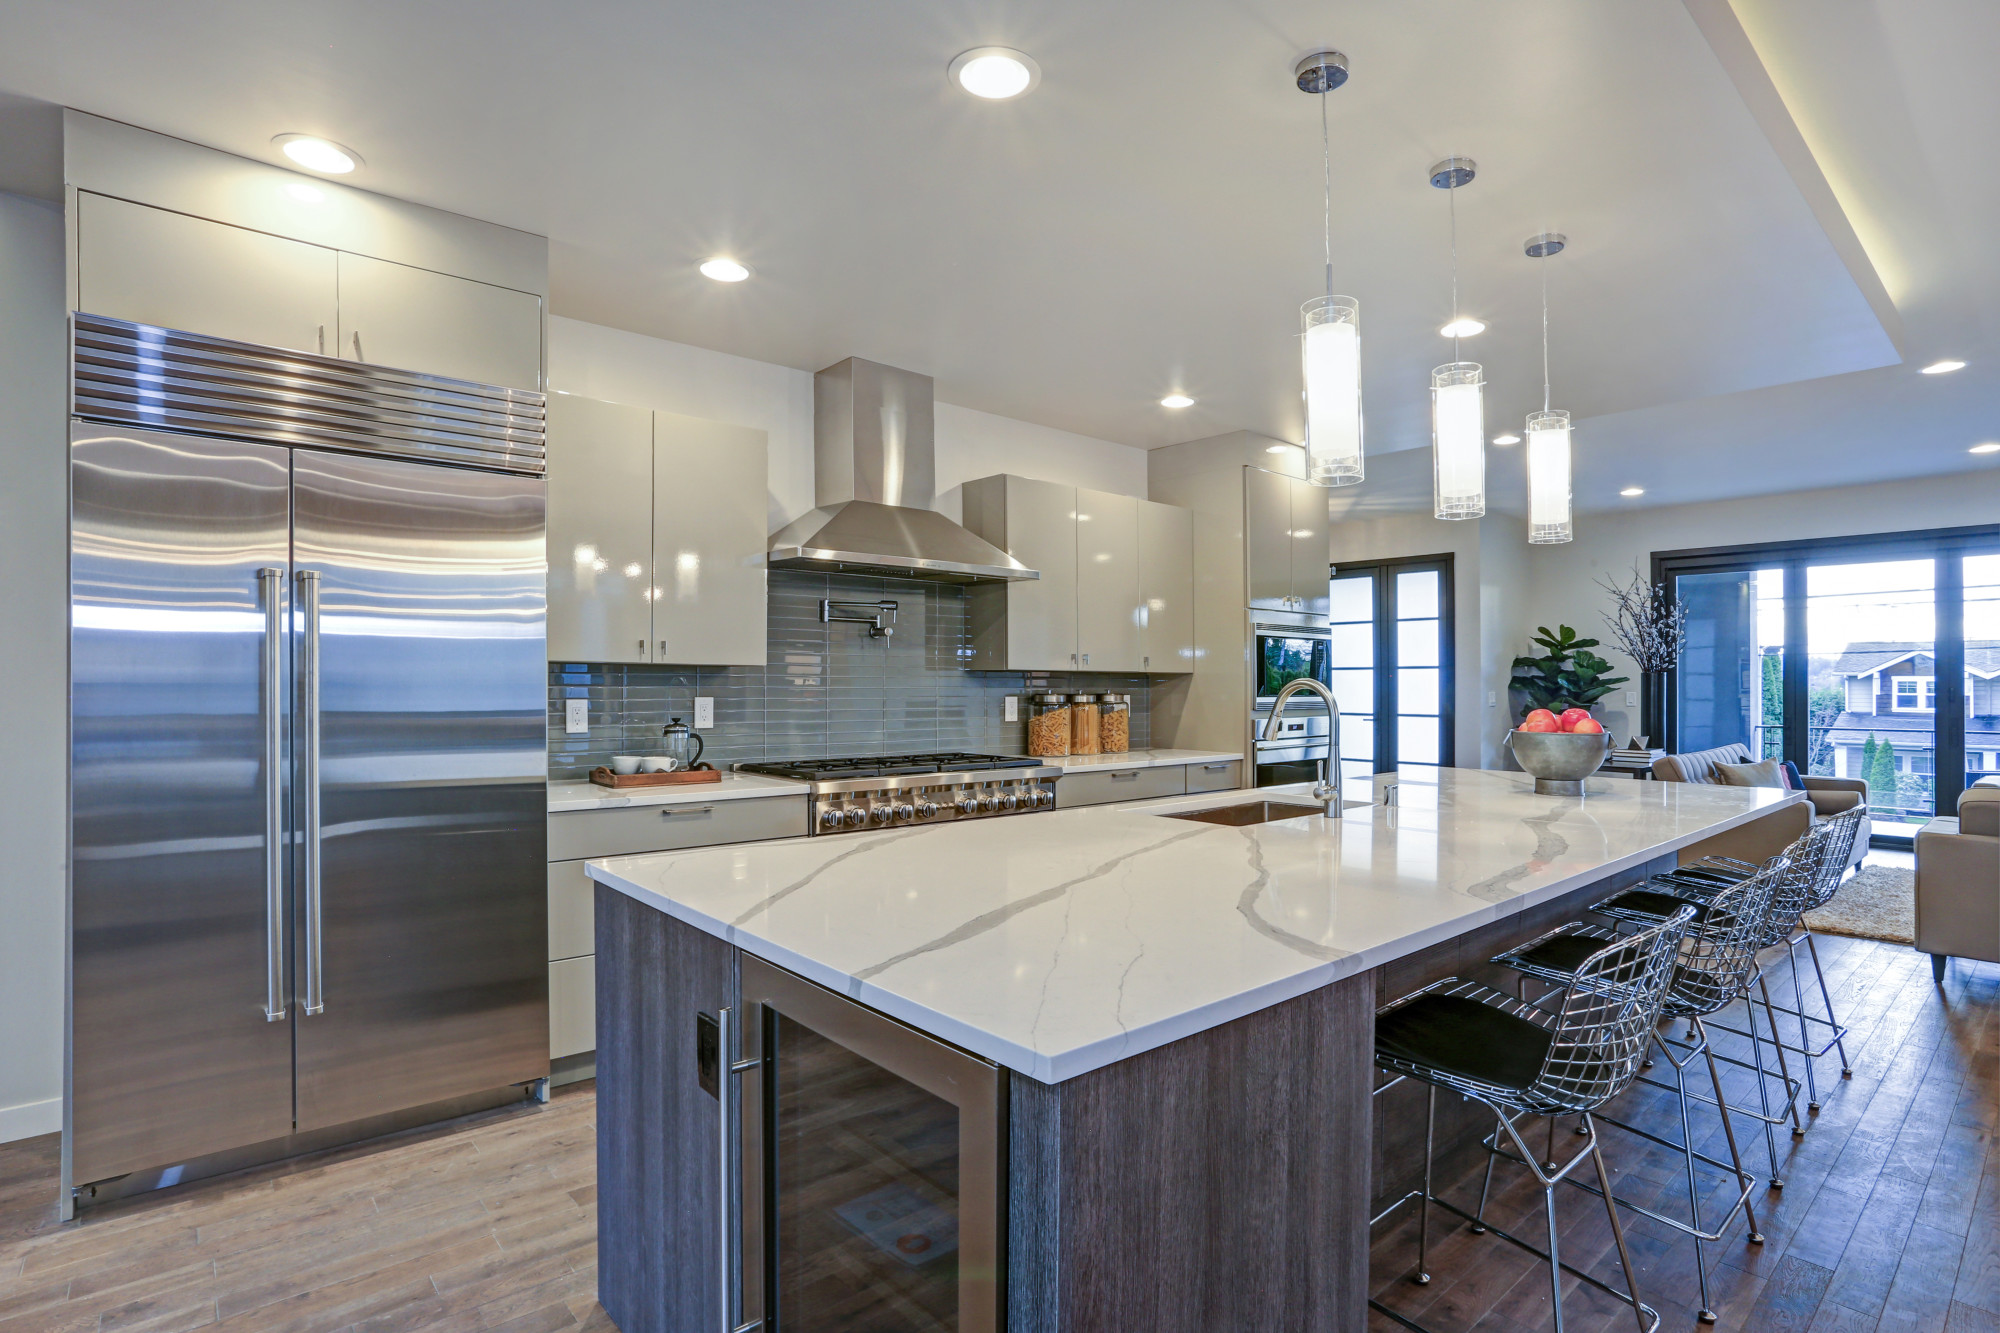 How To Decorate Large And Small Kitchens Efficiently Az Big Media